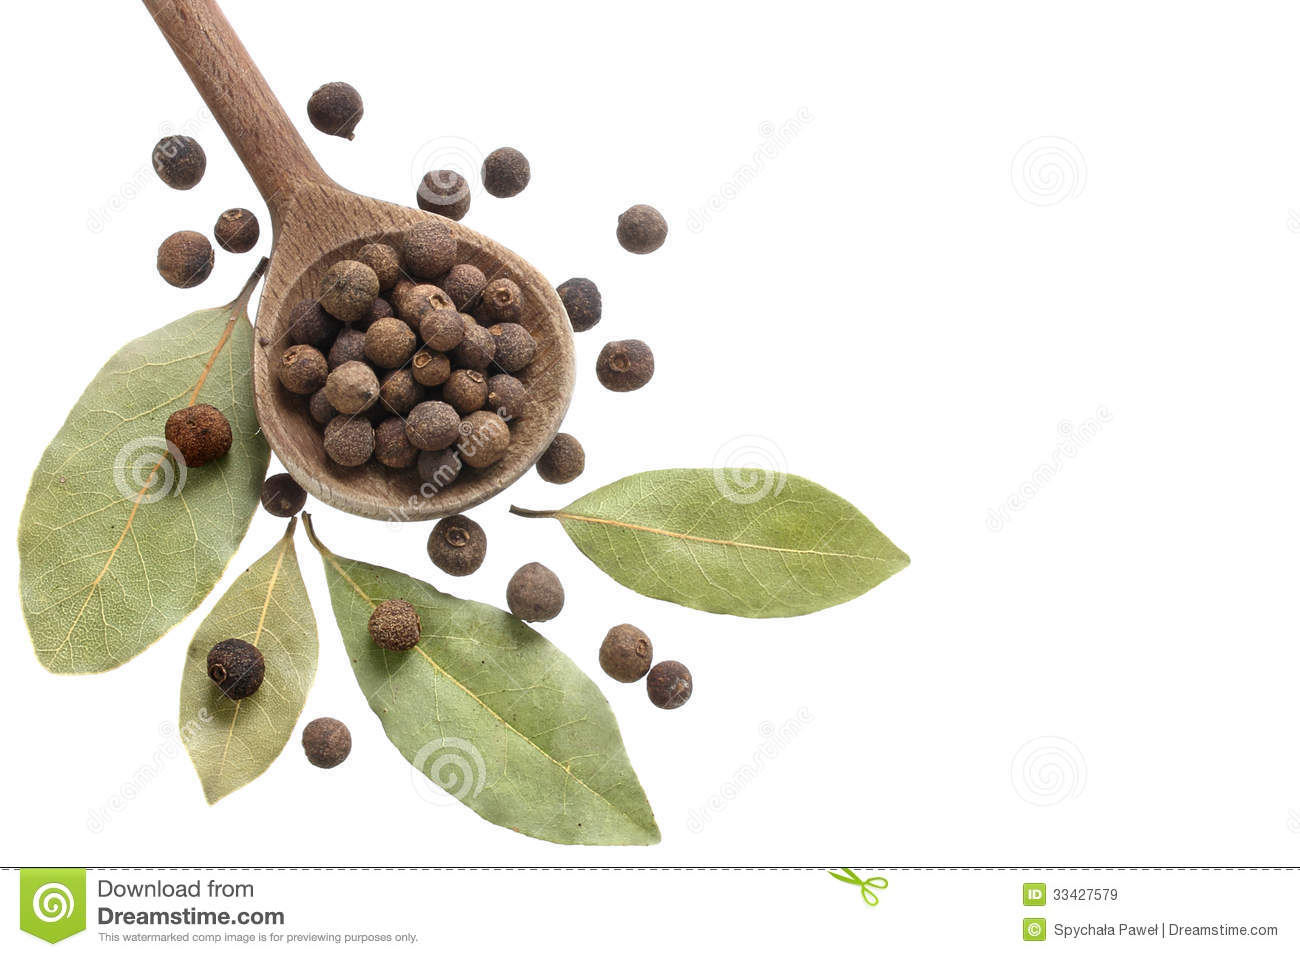 Allspice and bay leaves